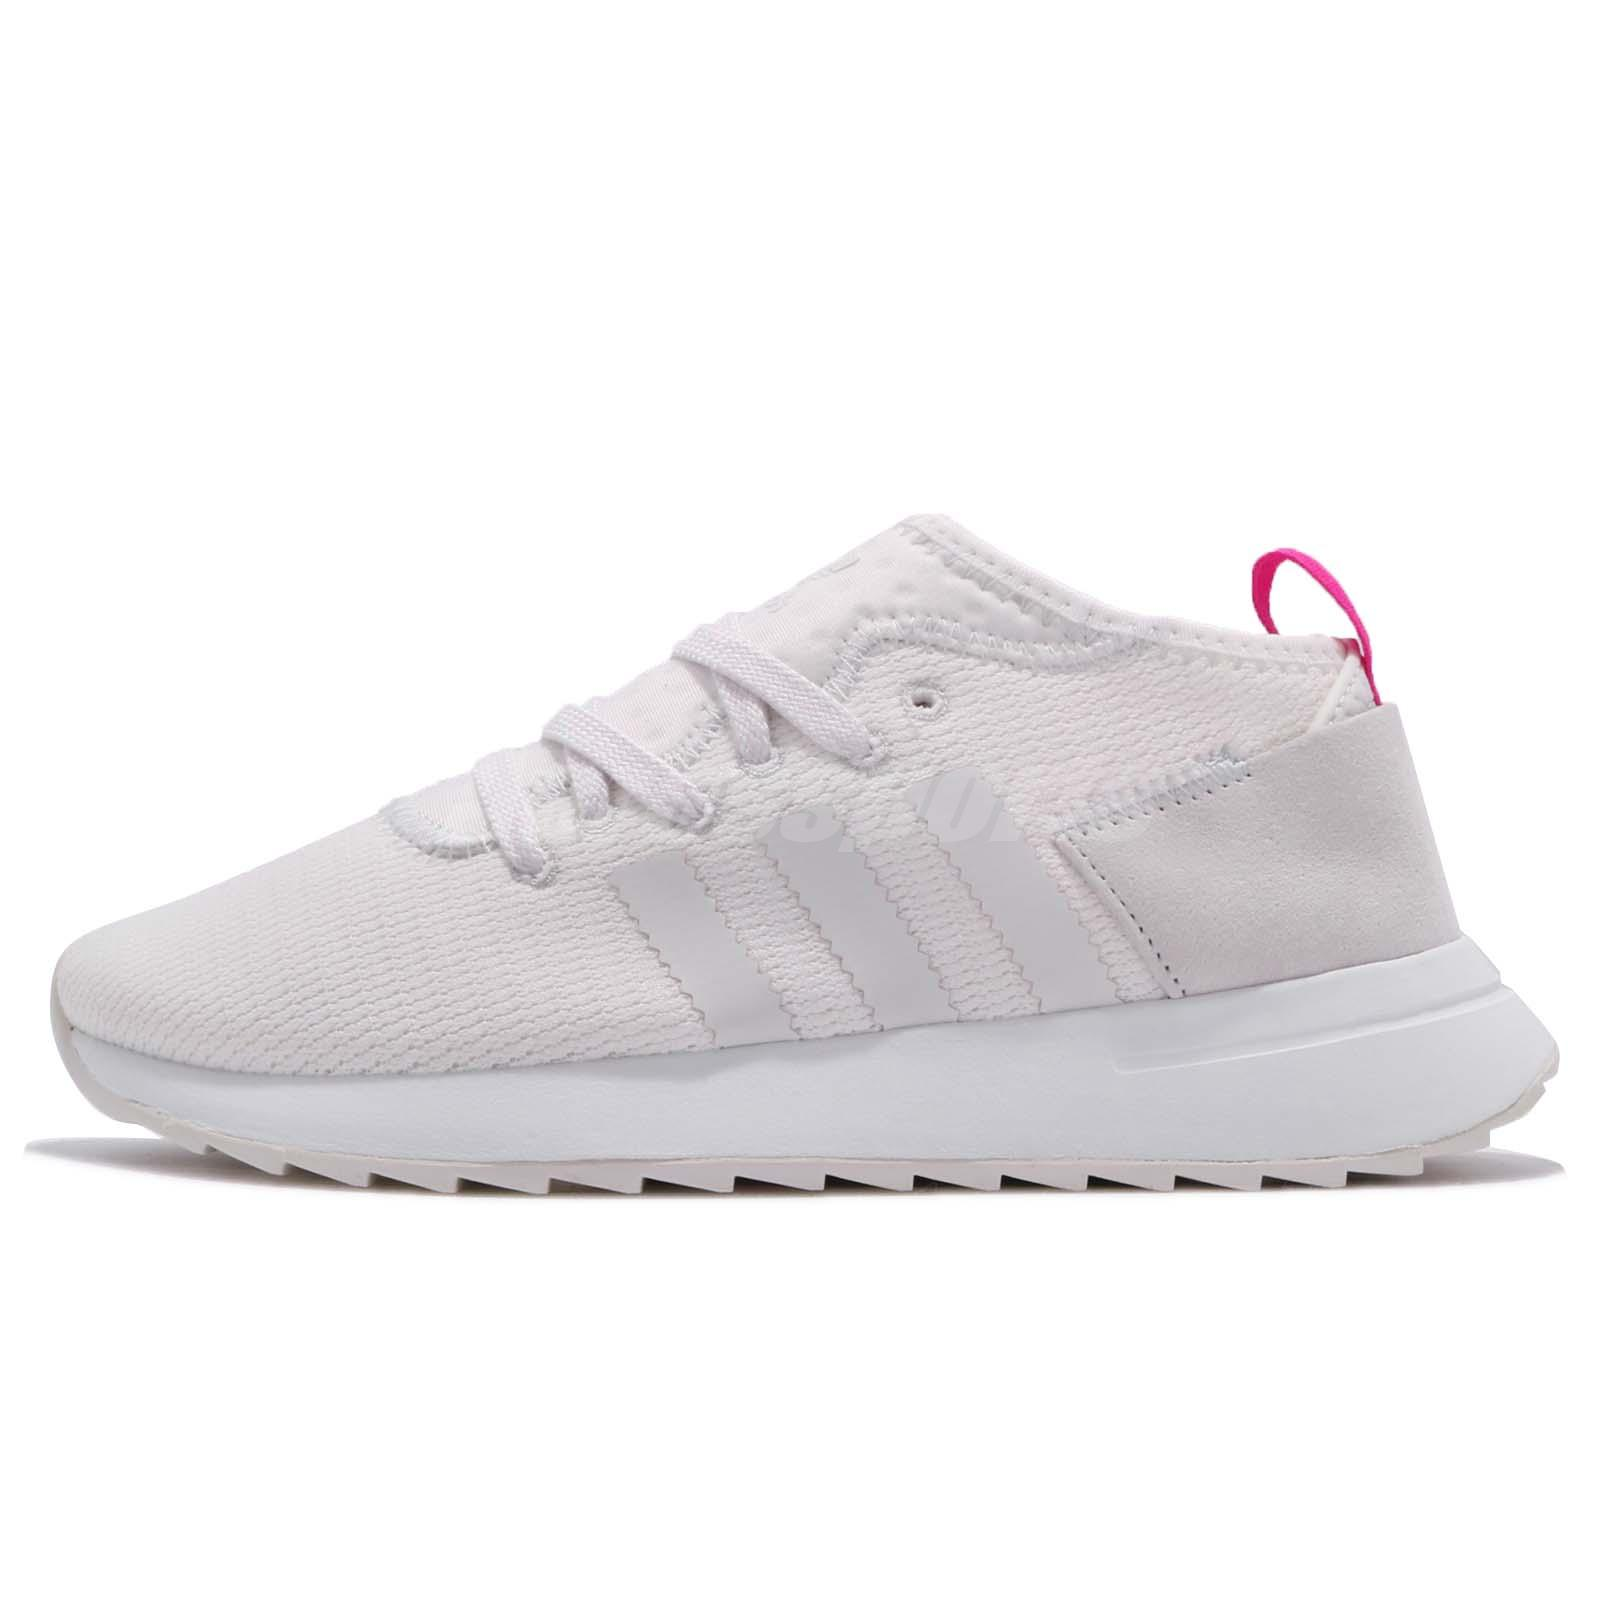 brand new 0ce29 bd06a adidas Originals FLB Mid Flashback White Pink Women Shoes Sneakers CG3772 -  mainstreetblytheville.org